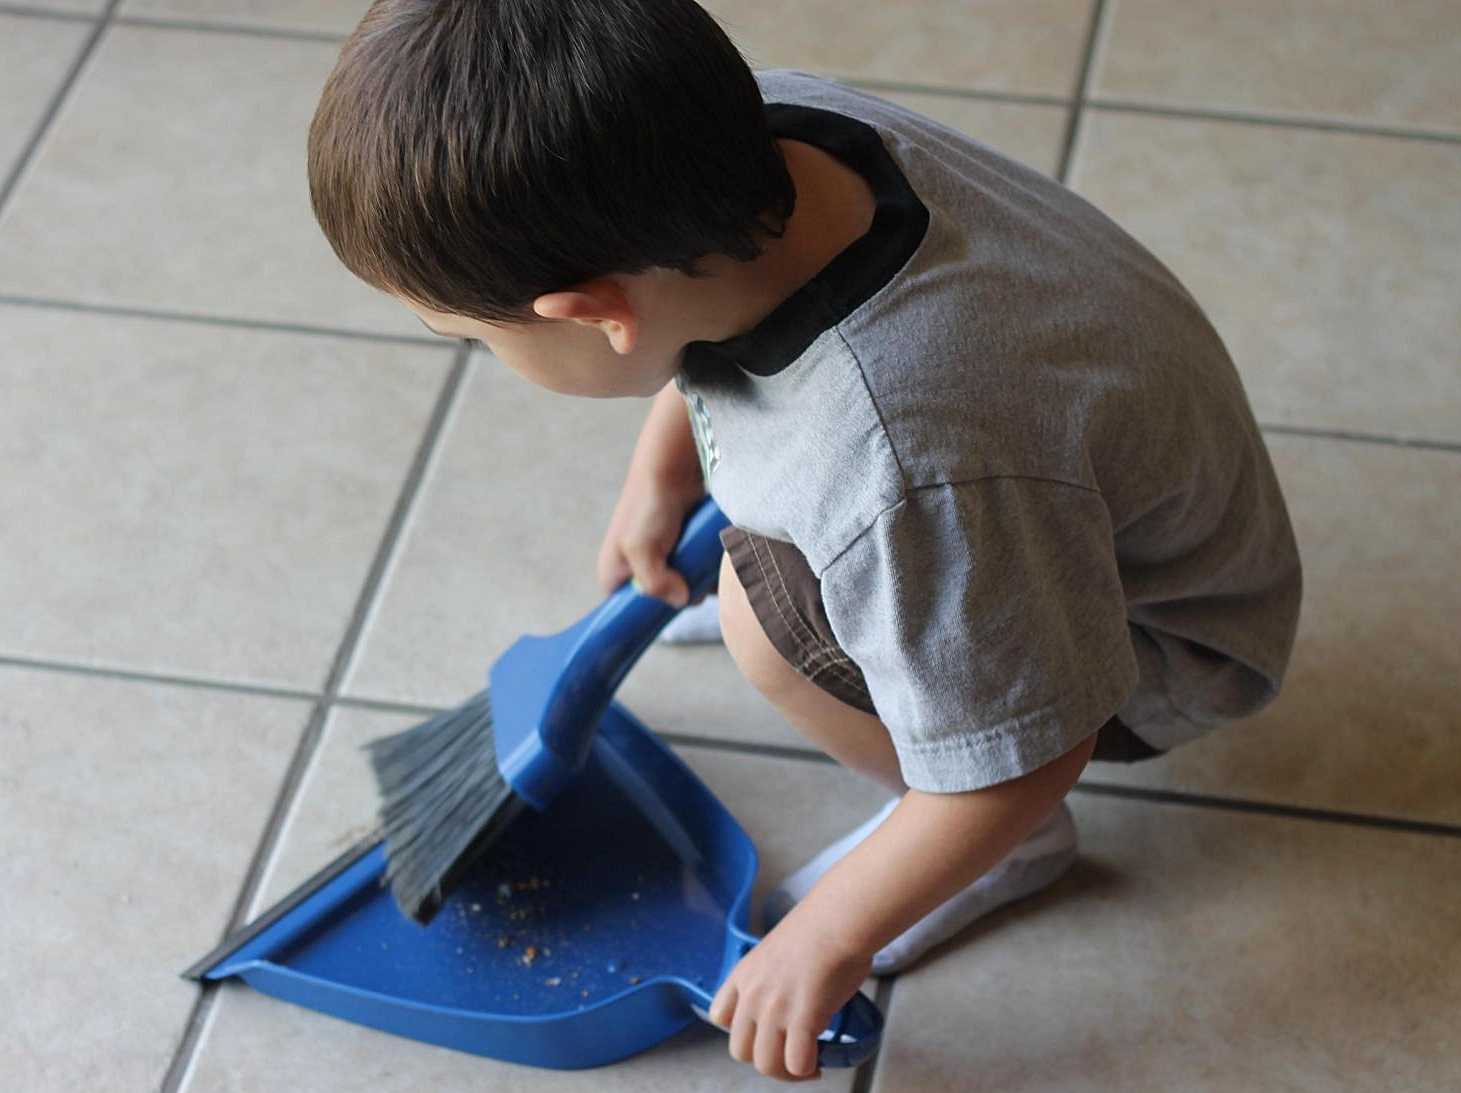 Lilyquilt Teaching Kids Chores In 3 Simple Steps